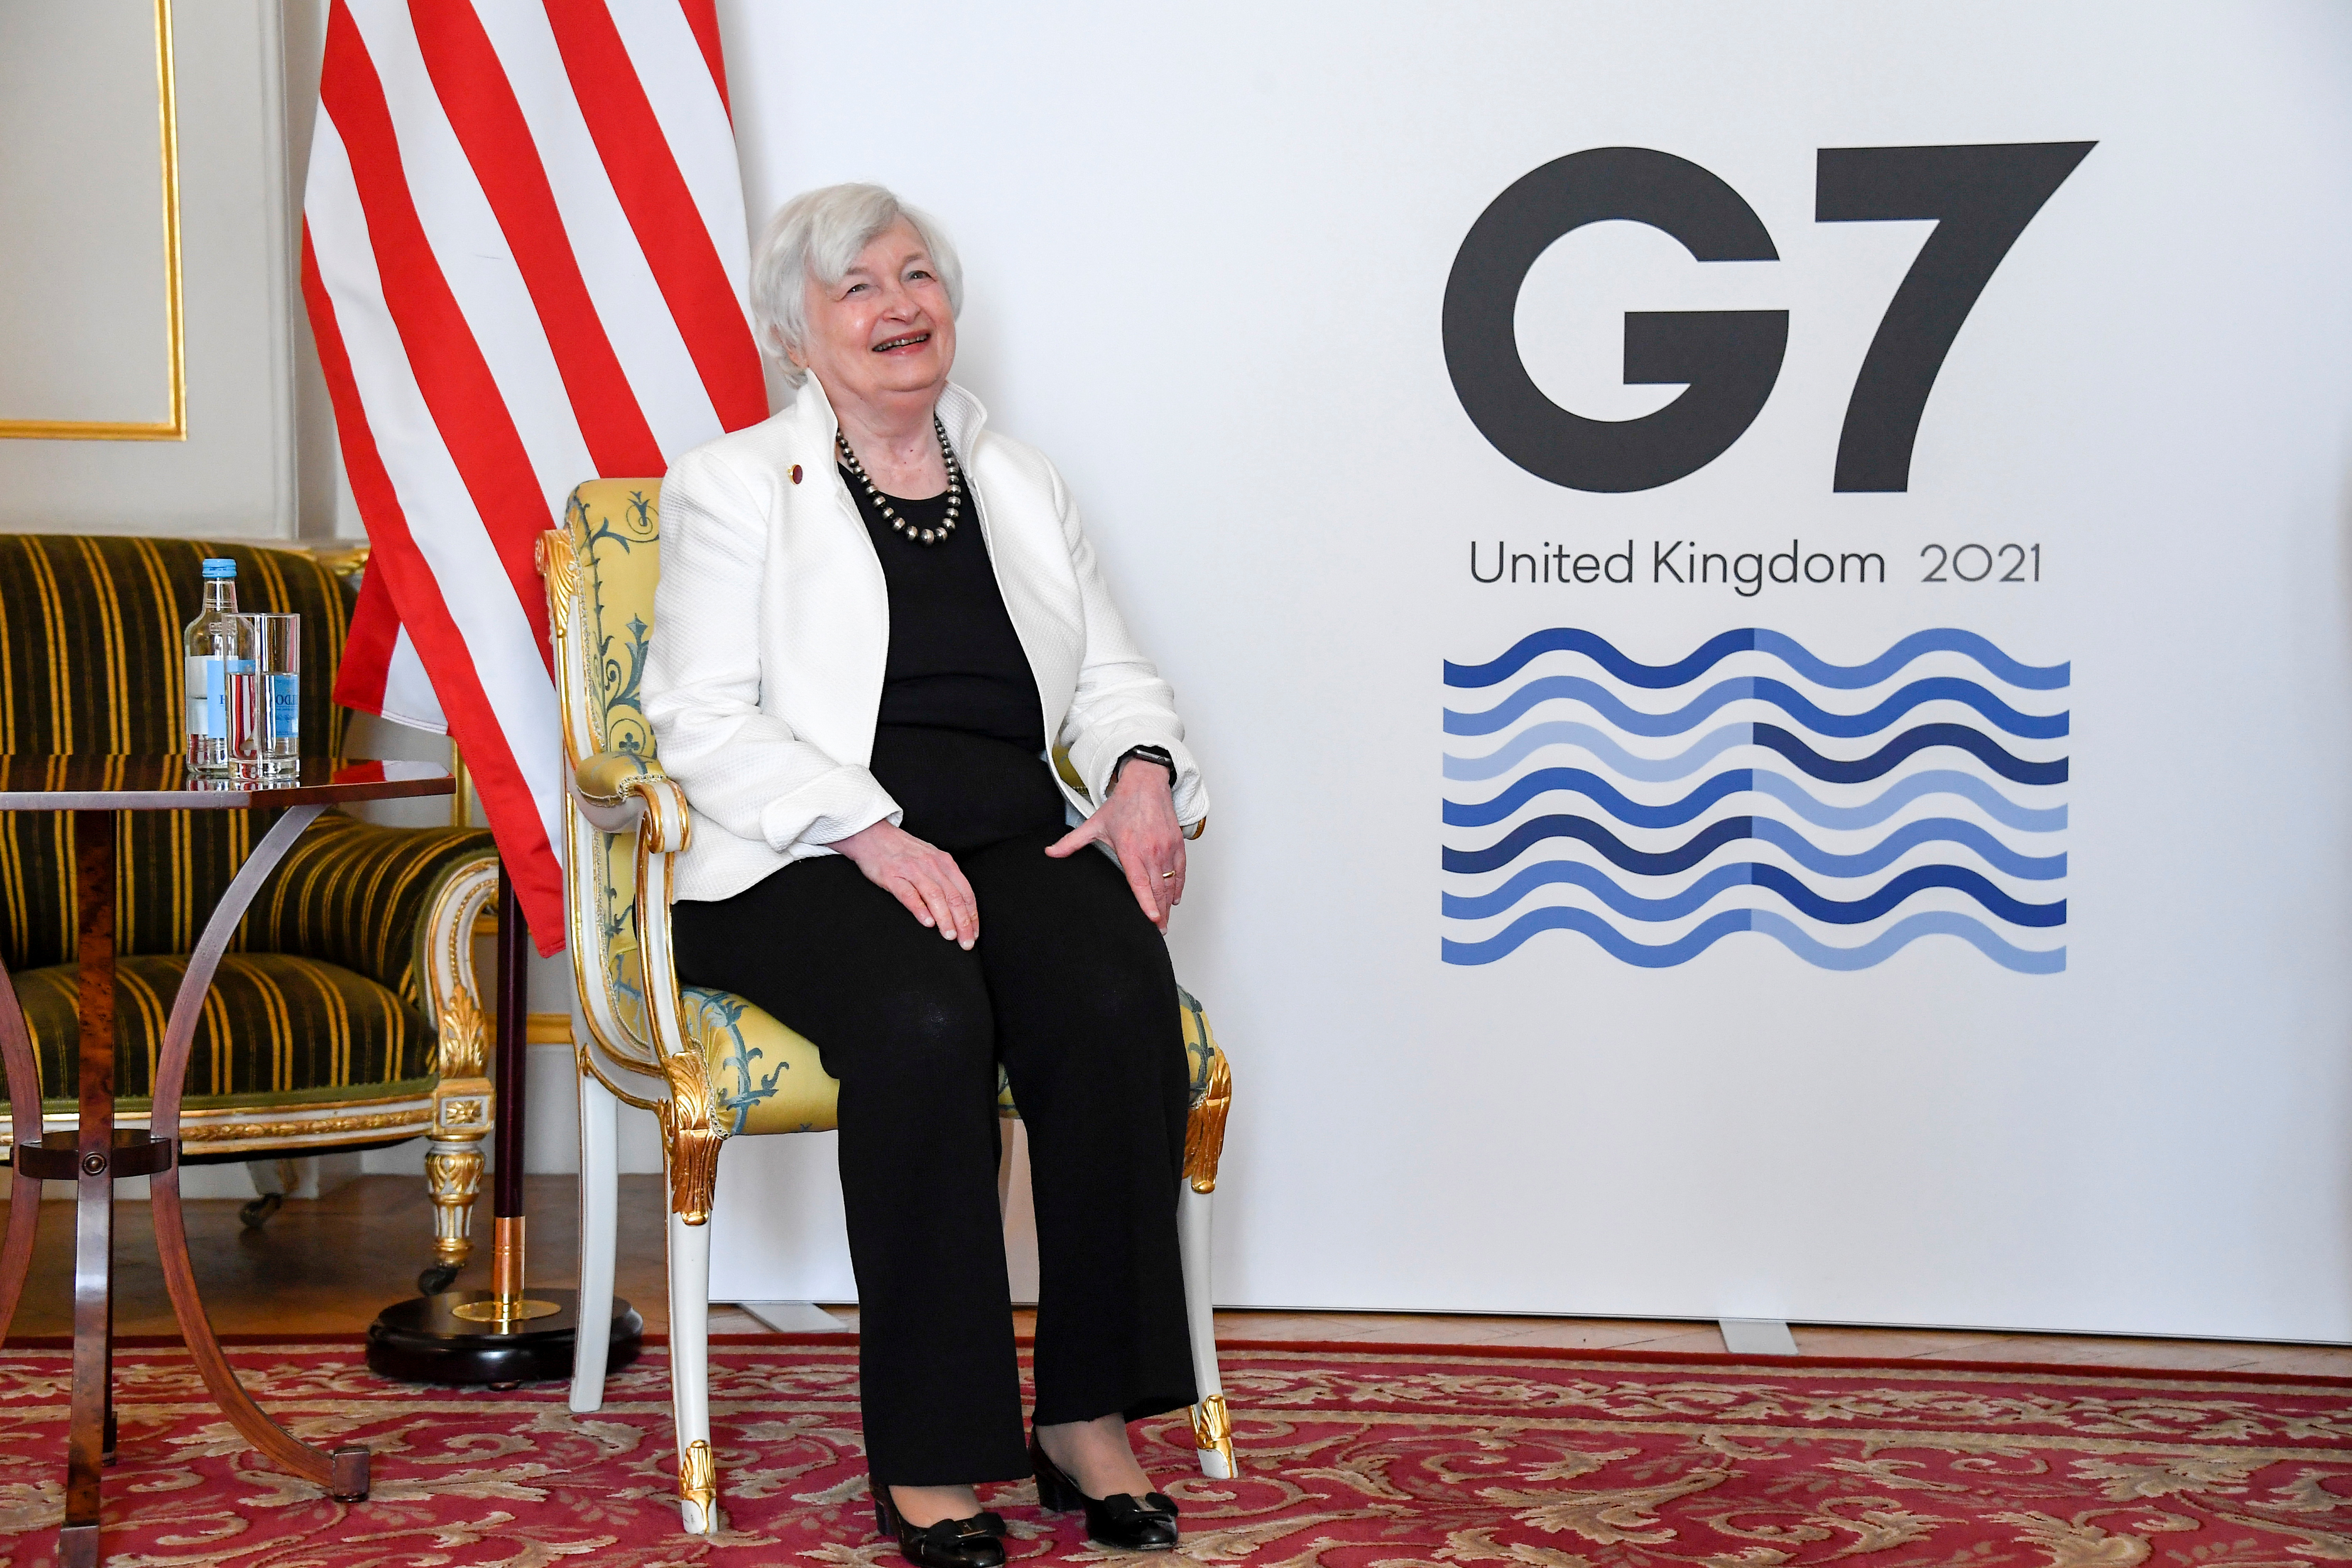 U.S. Treasury Secretary Janet Yellen poses as finance ministers from across the G7 nations meet at Lancaster House in London, Britain June 5, 2021 ahead of the G7 leaders' summit. Alberto Pezzali/Pool via REUTERS